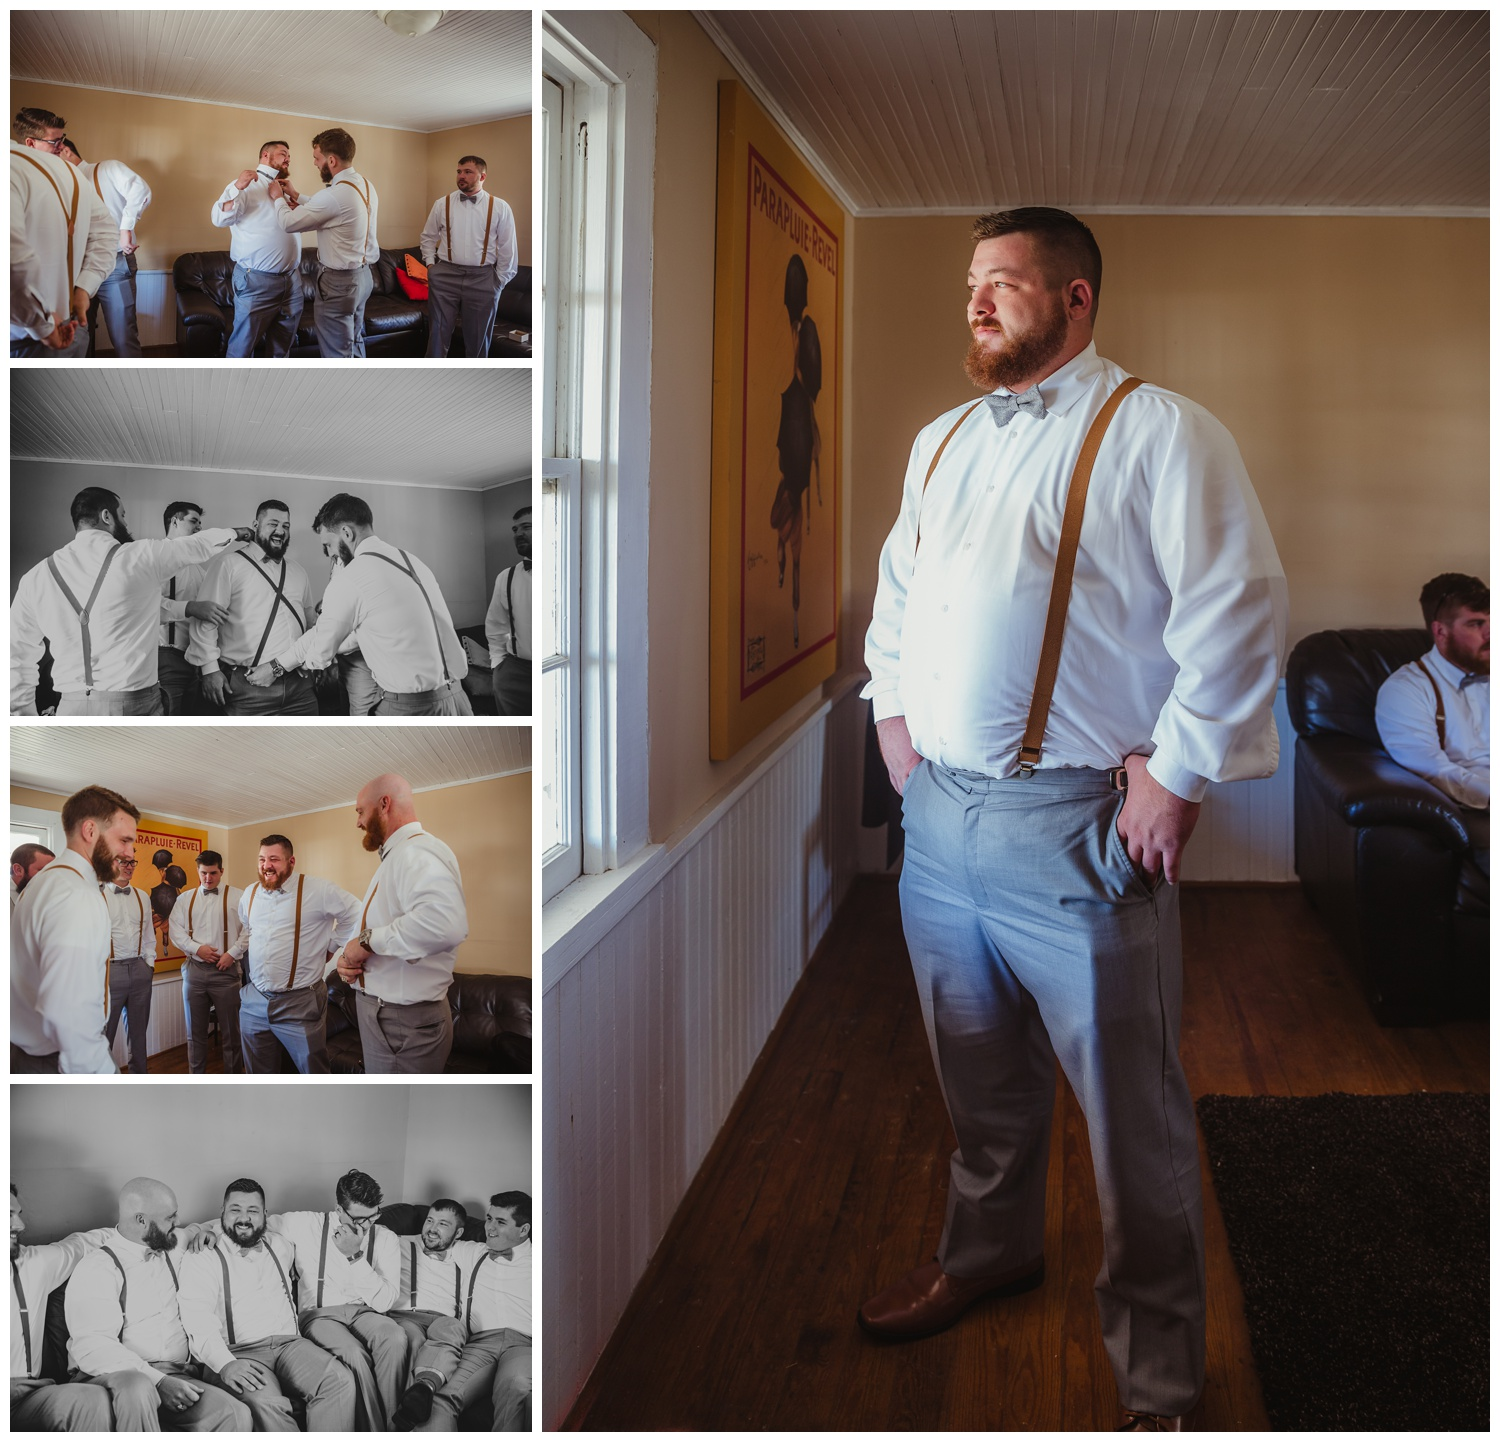 The groom takes some time with his groomsmen before the wedding at The Warren Estate, images by Rose Trail Images of Rolesville, NC.